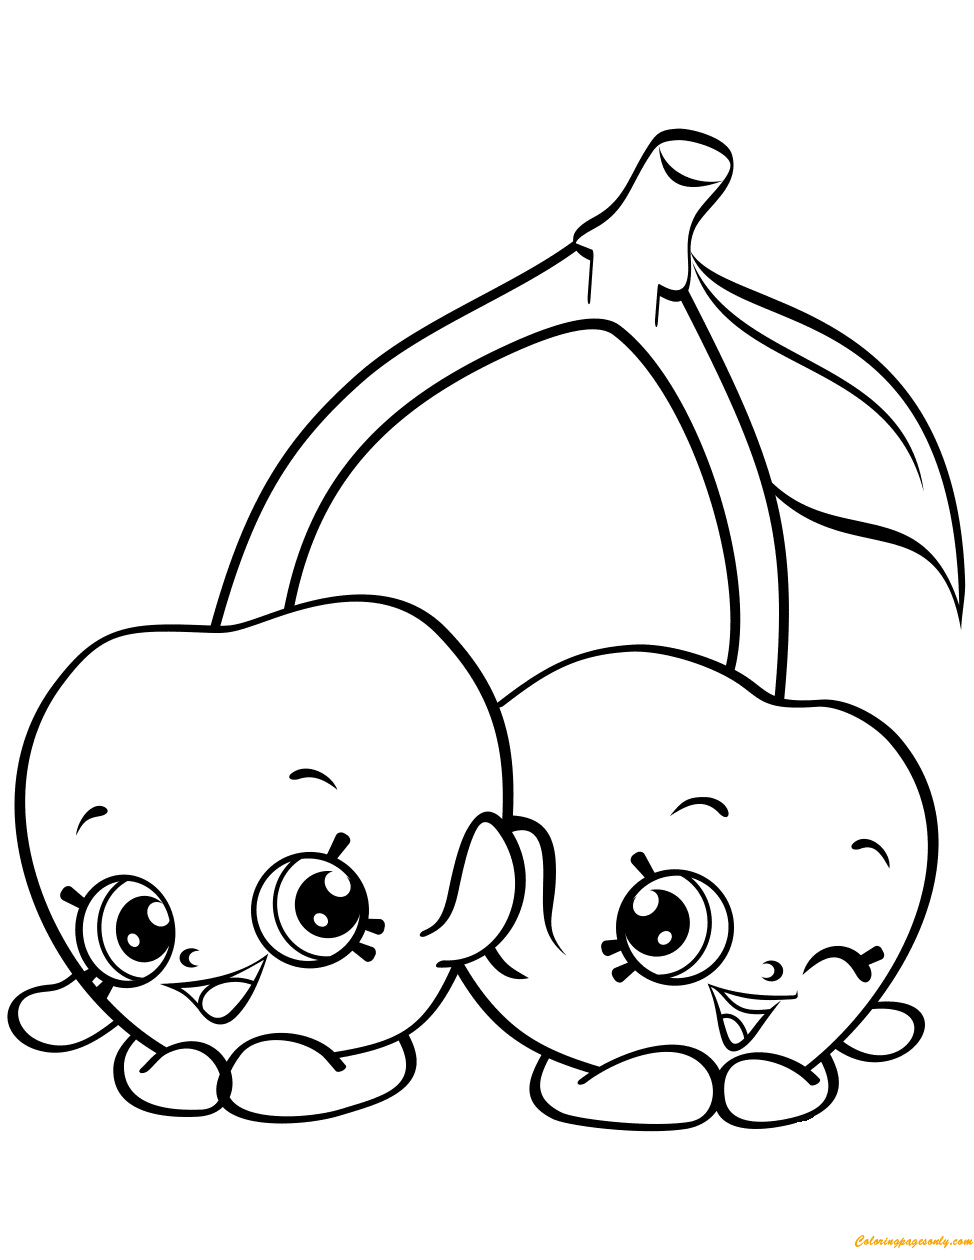 Tickety Tock Coloring Pages - Best Coloring Page 2018 | 1260x974